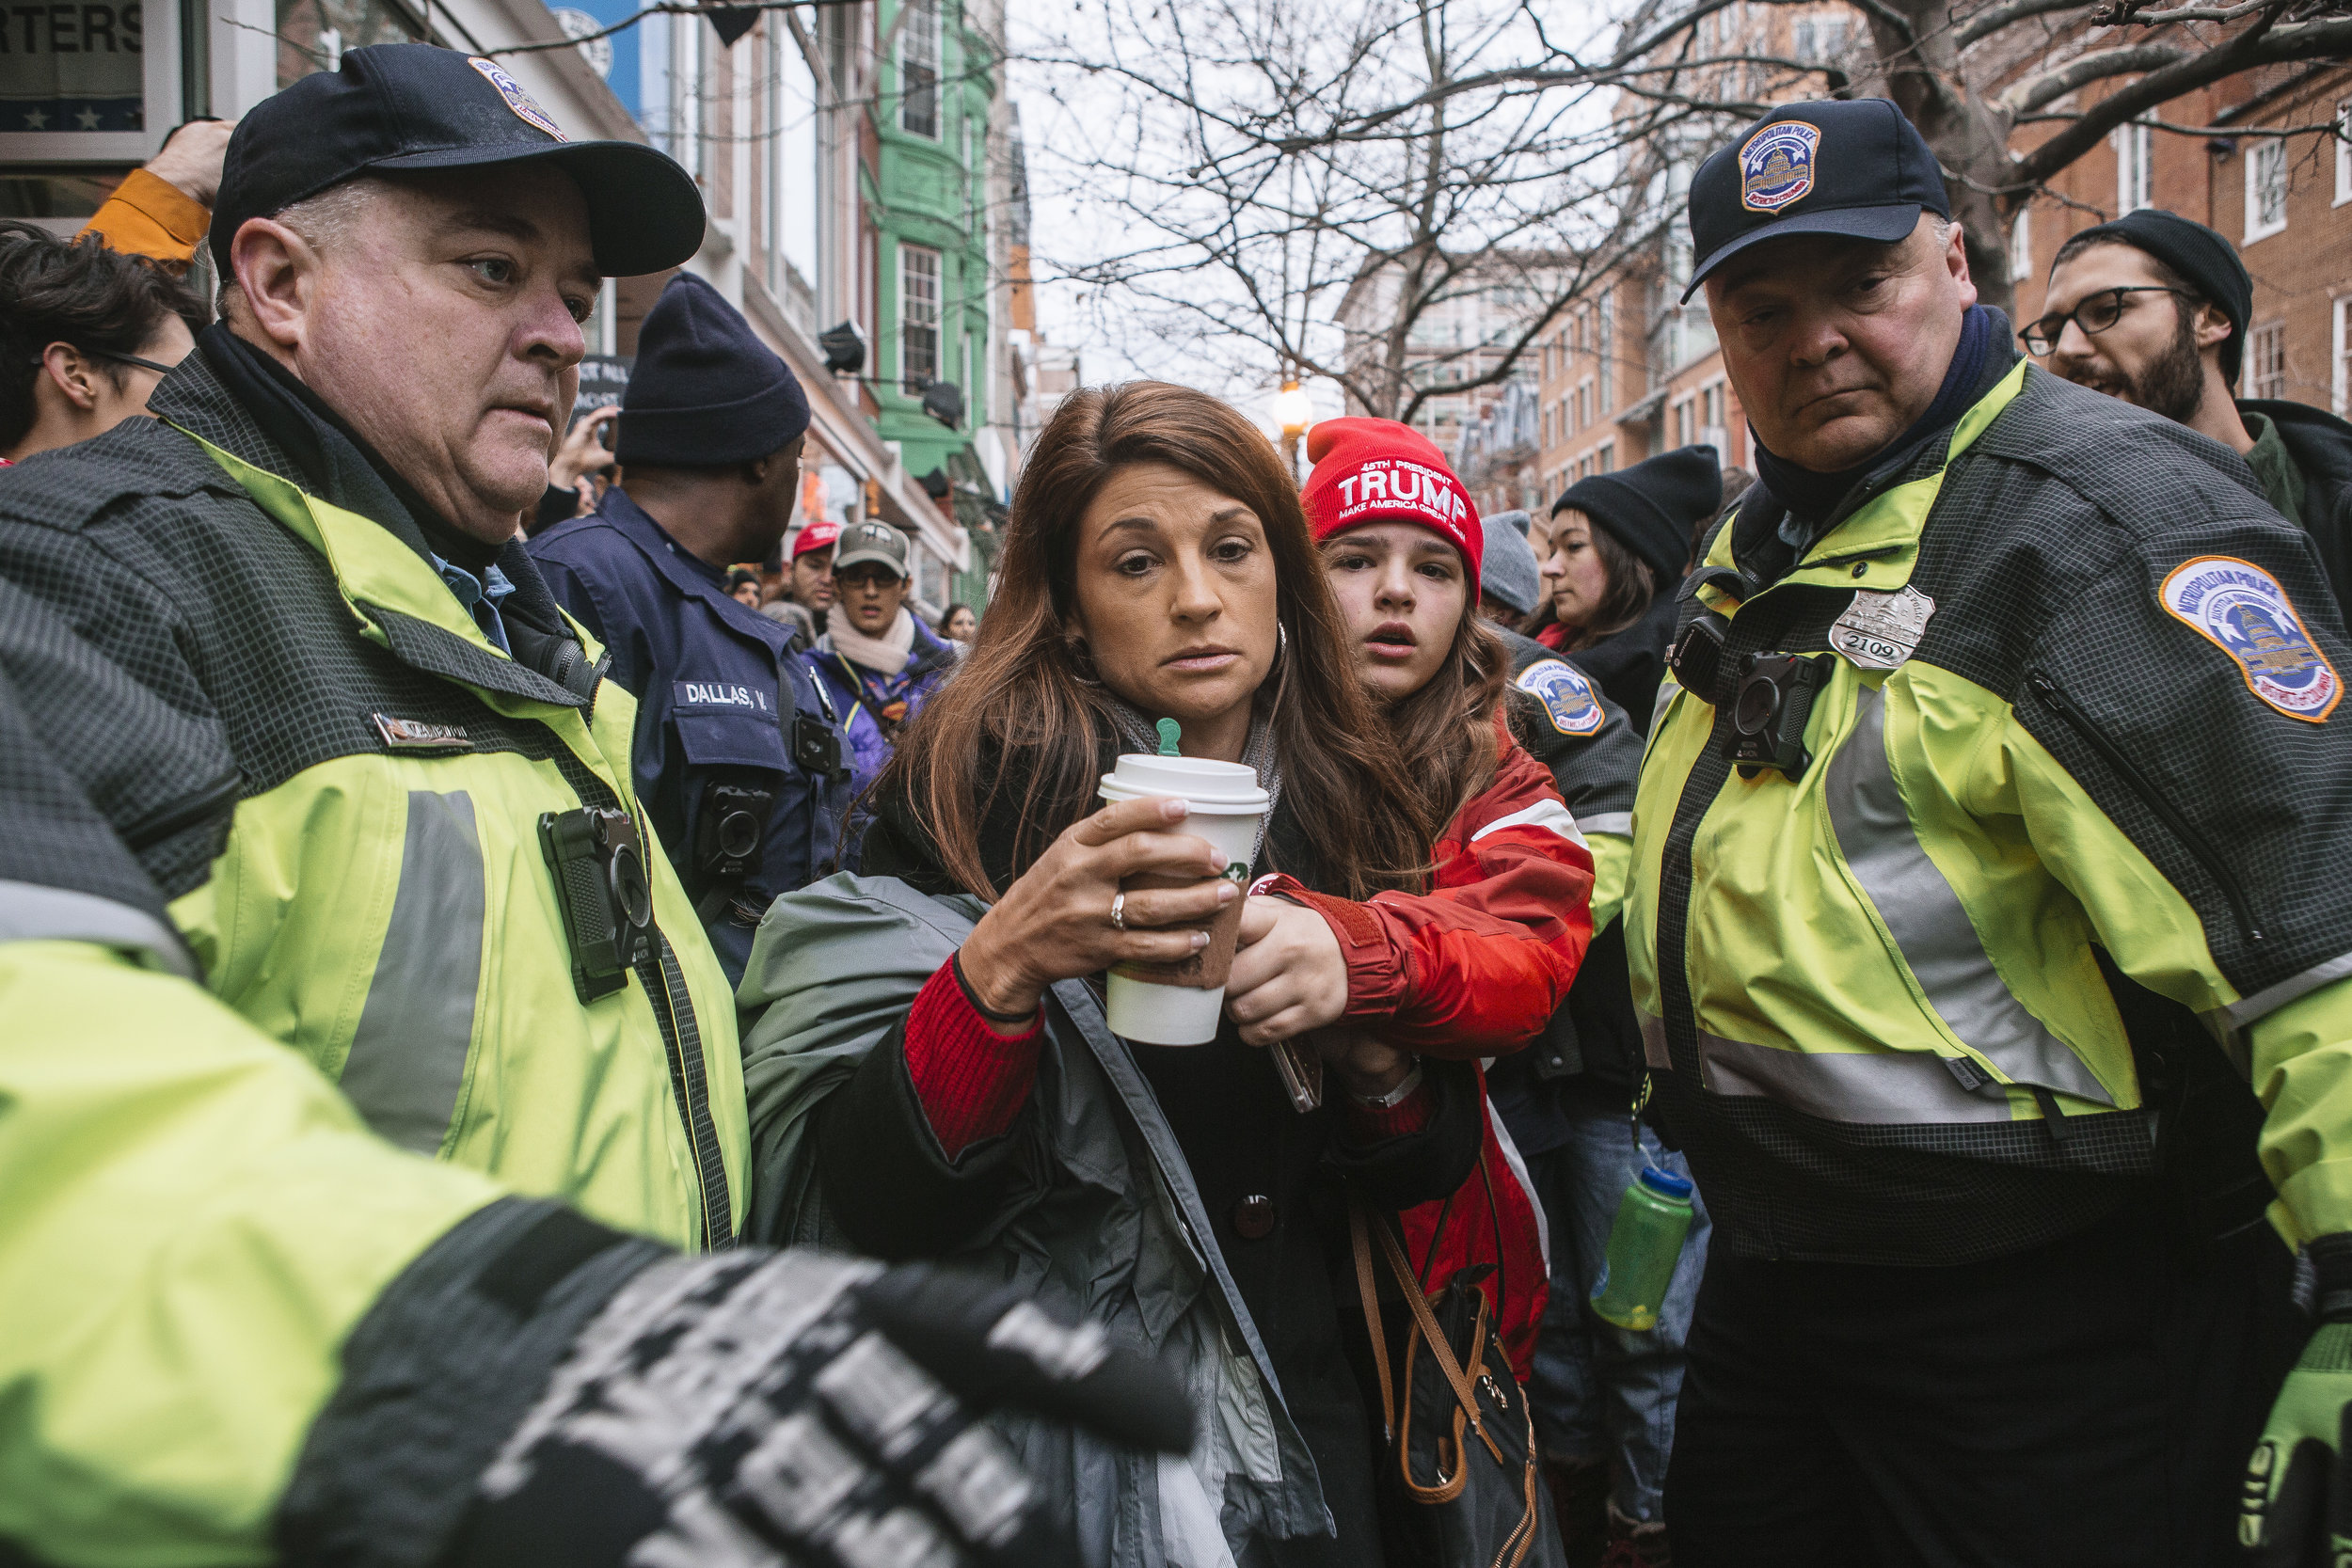 A mother and her daughter are escorted by the police through a blockade at the entrance to the 2017 US Presidential Inauguration